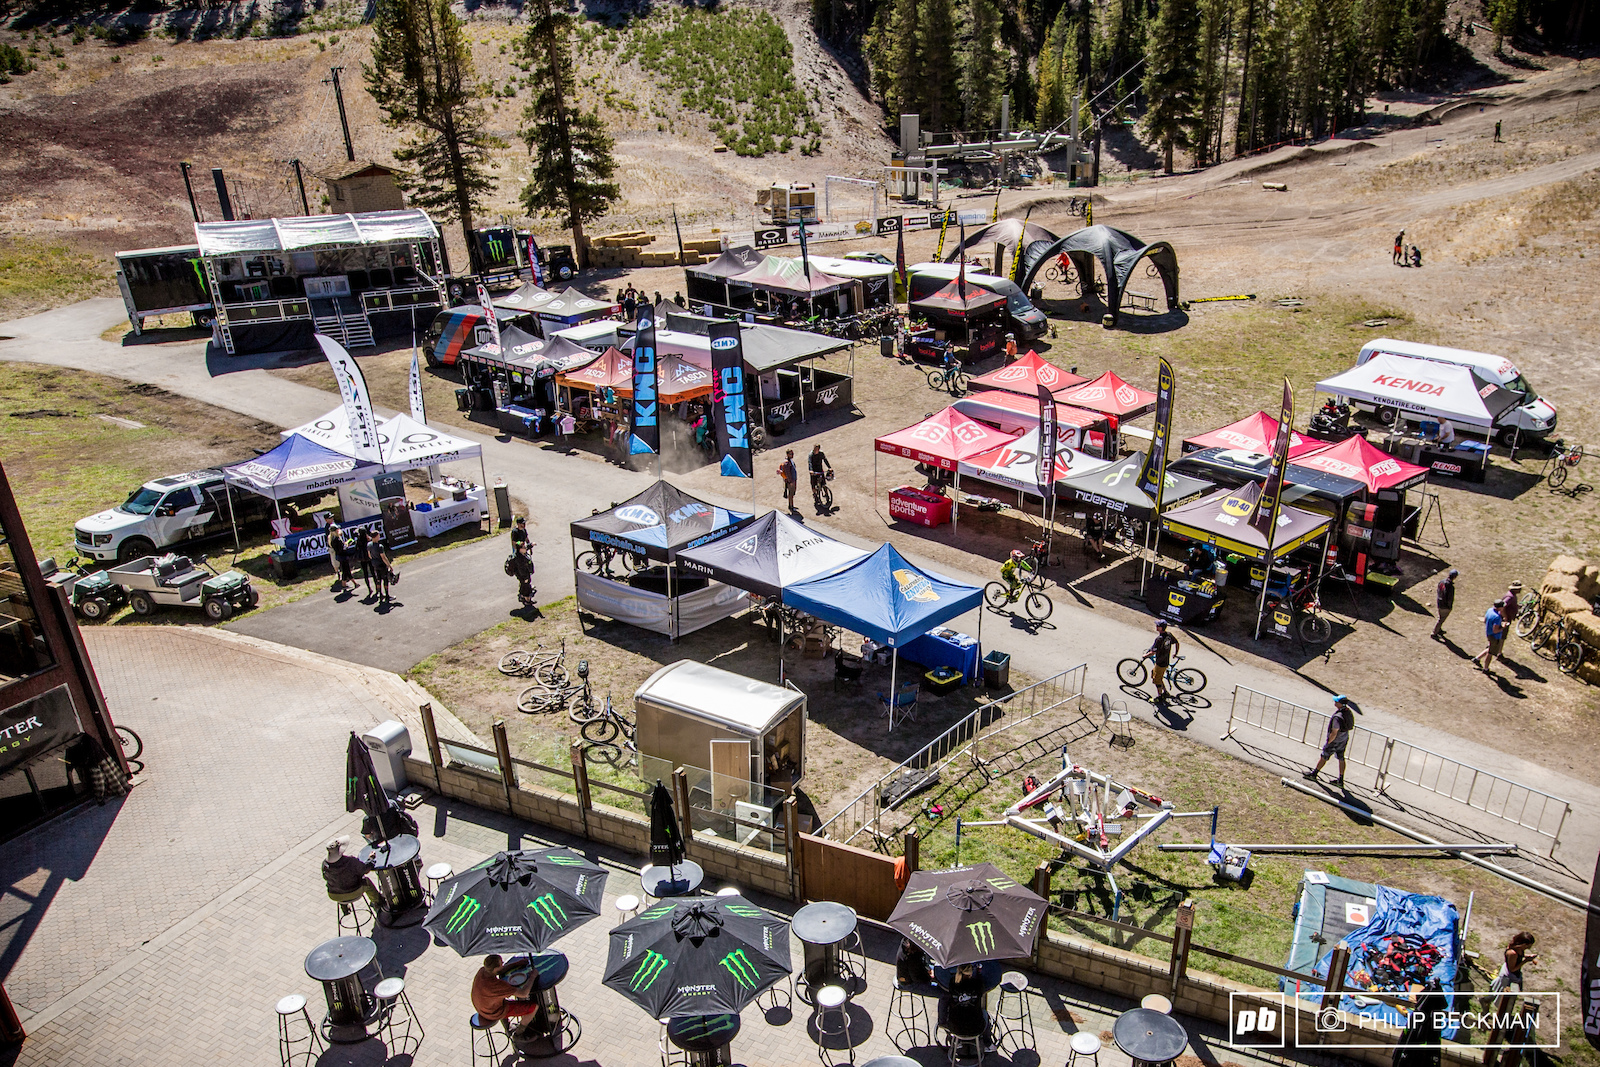 One view from the top of Canyon Lodge the epicenter of action at the Kamikaze Bike Games.